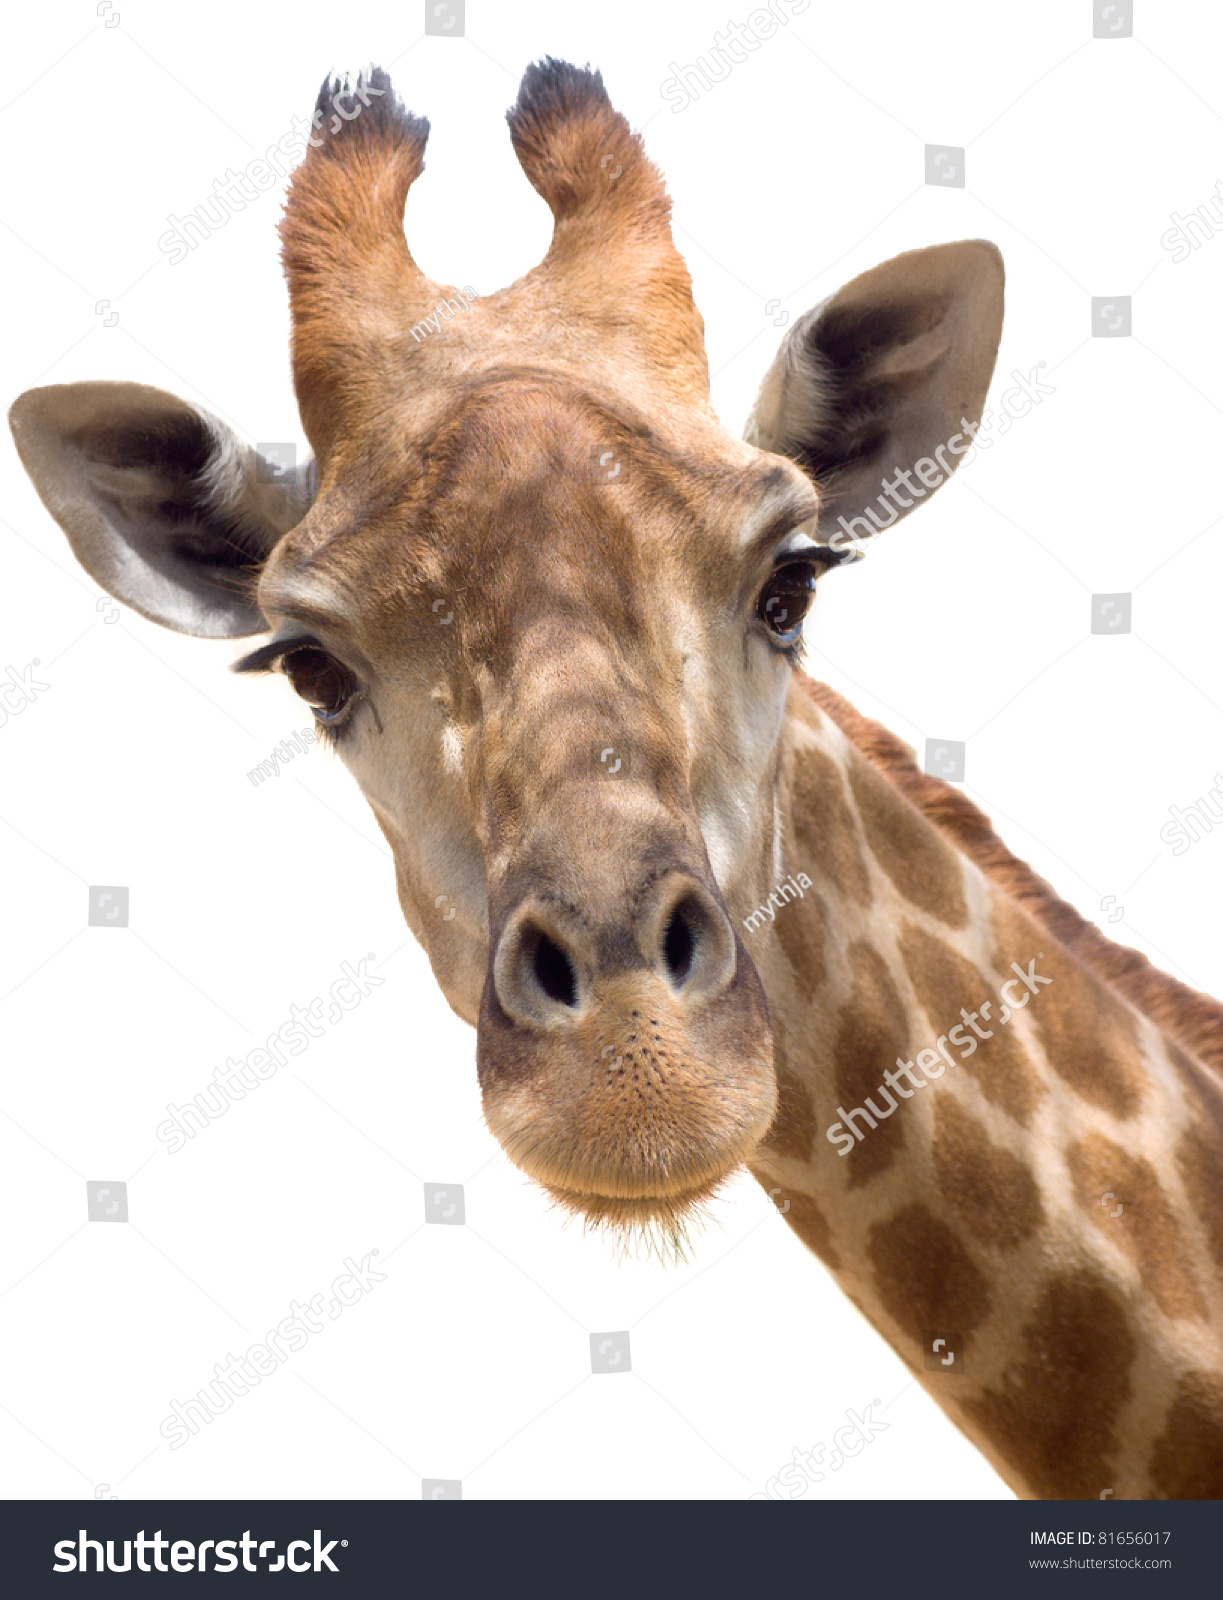 Giraffe head close up - photo#12